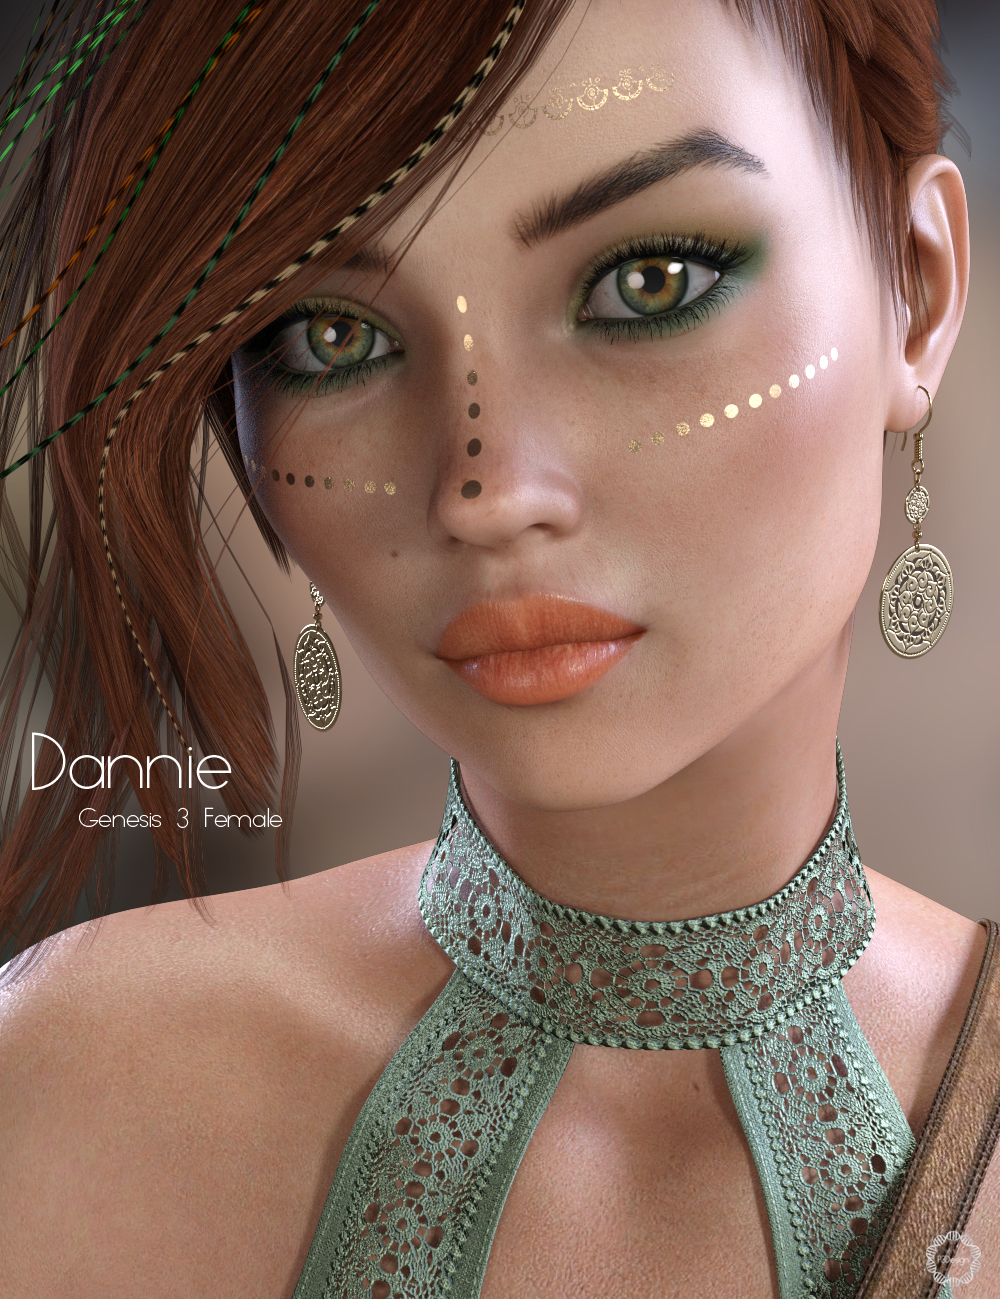 P3D Danny for Genesis 3 and 8 Female by: P3Design, 3D Models by Daz 3D